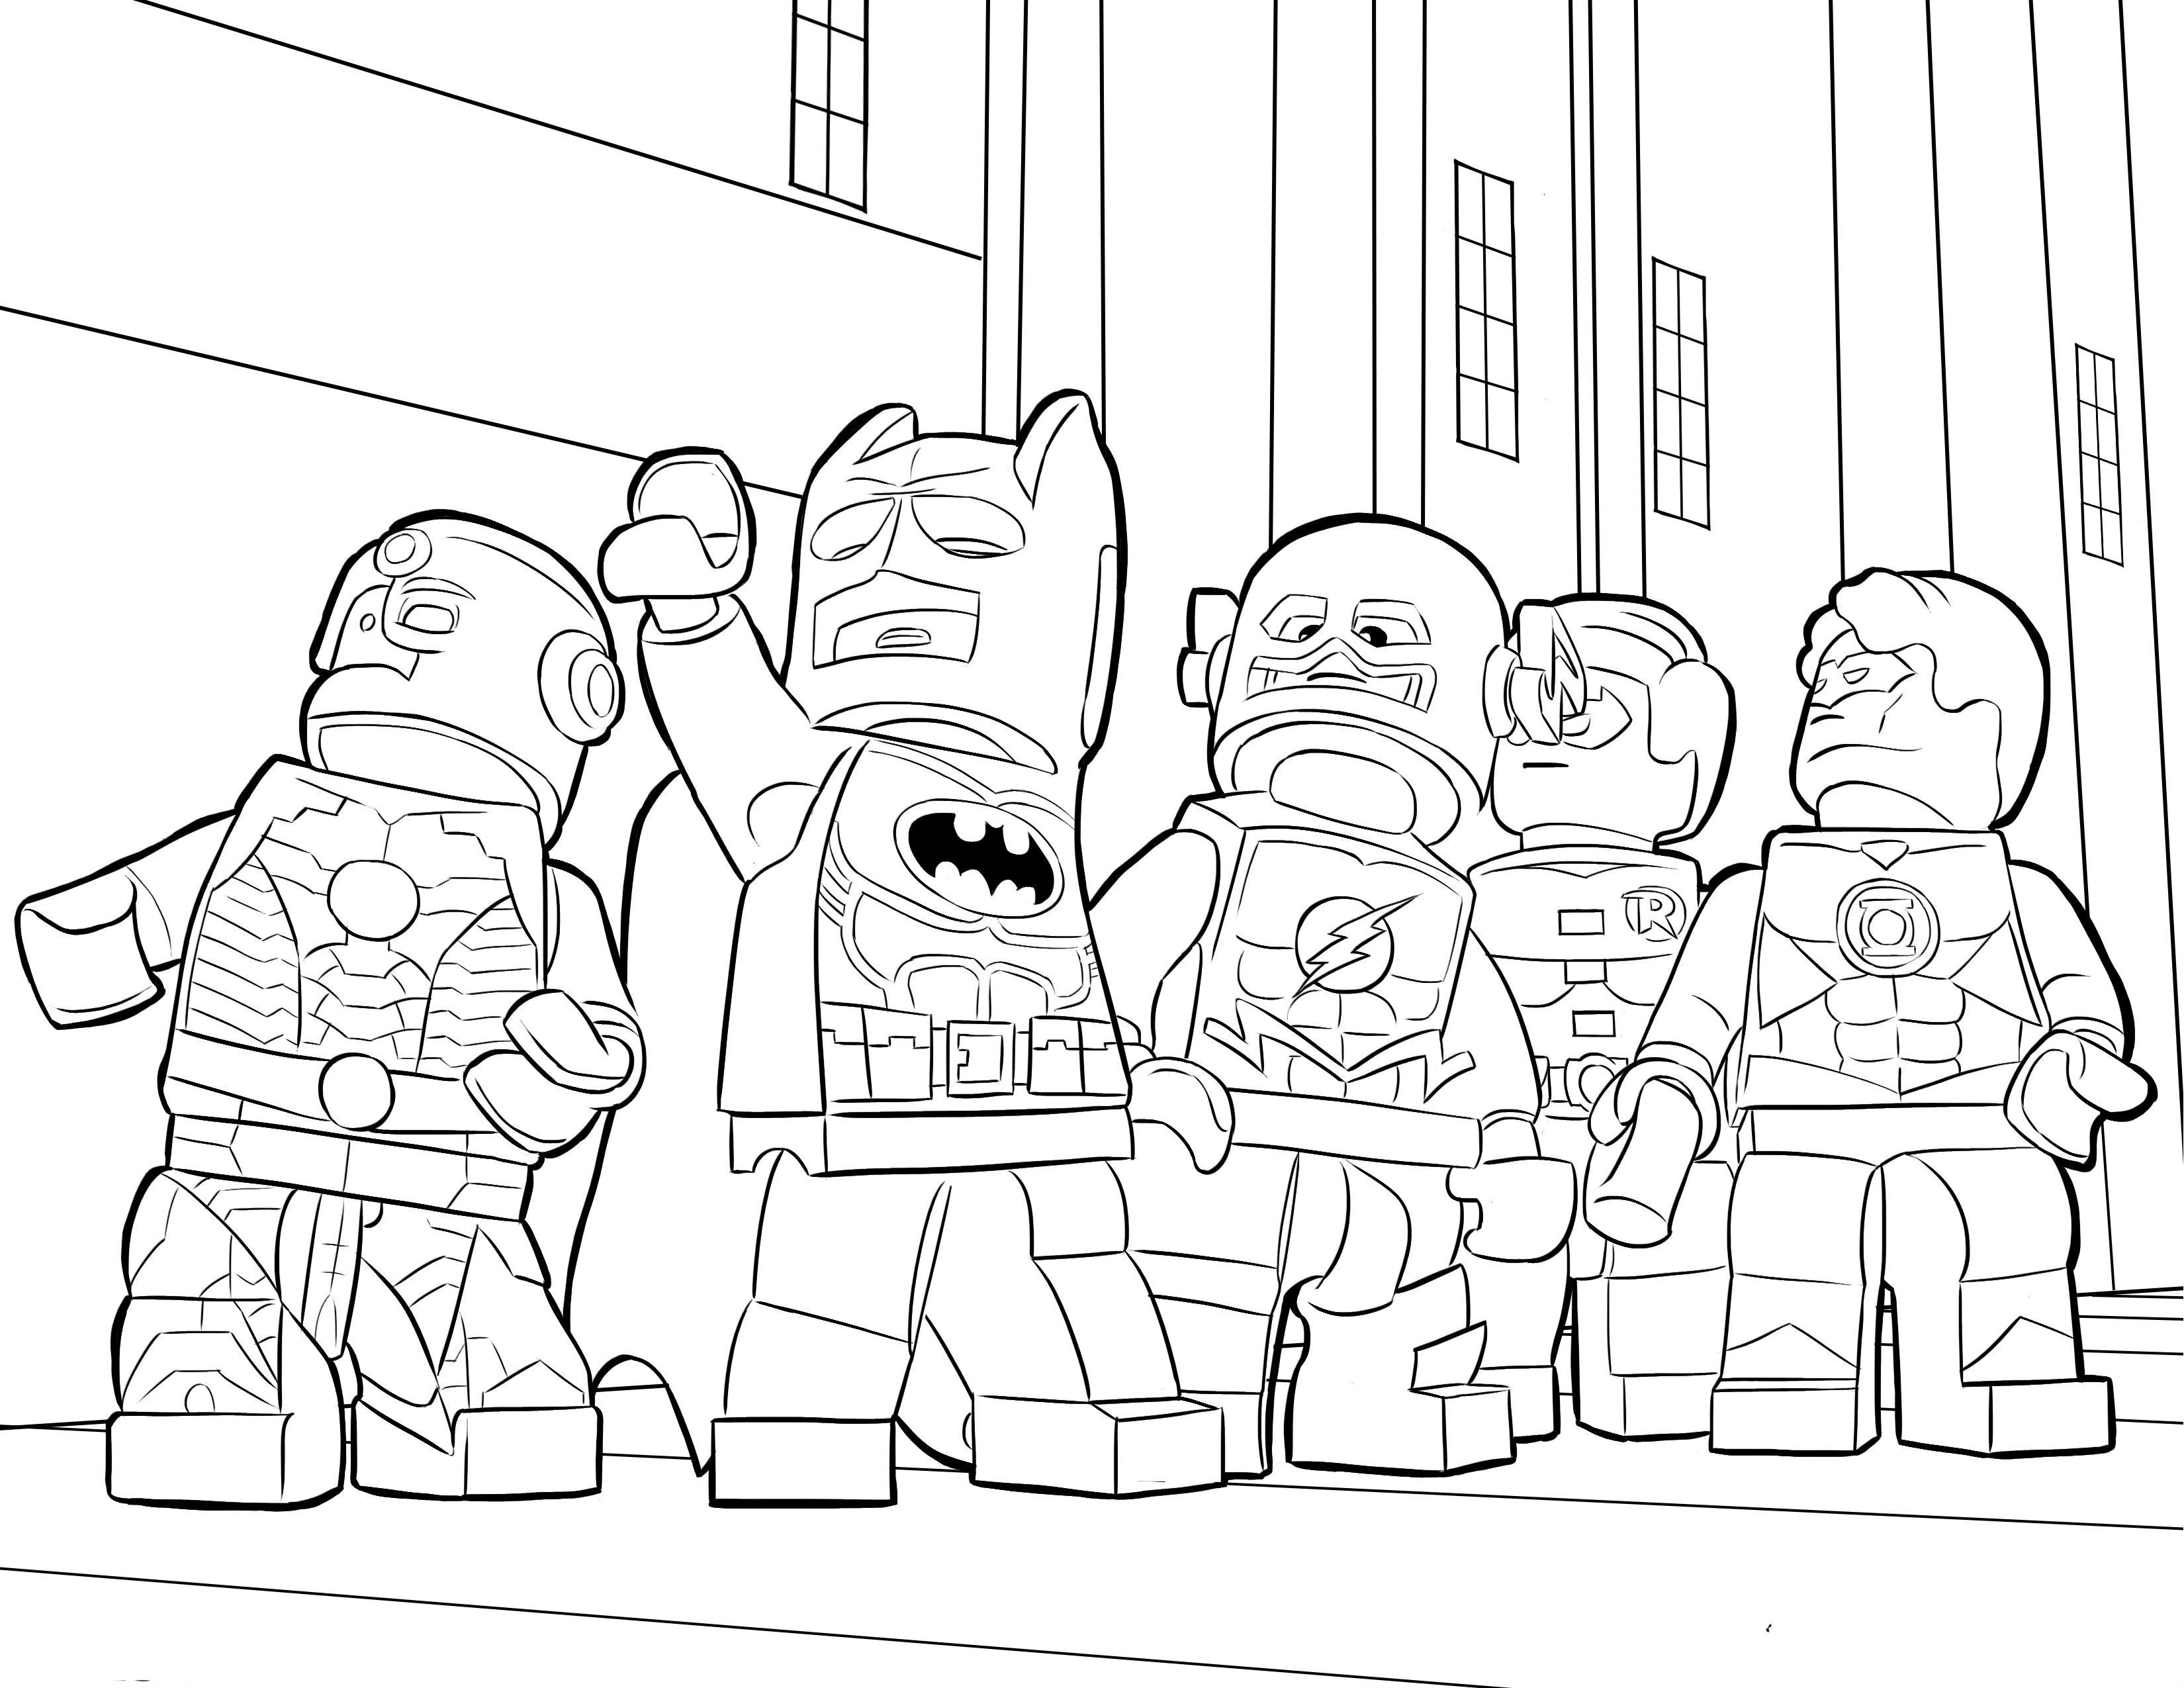 lego super heroes colouring pages marvel batman from lego superhero coloring pages free heroes pages lego colouring super